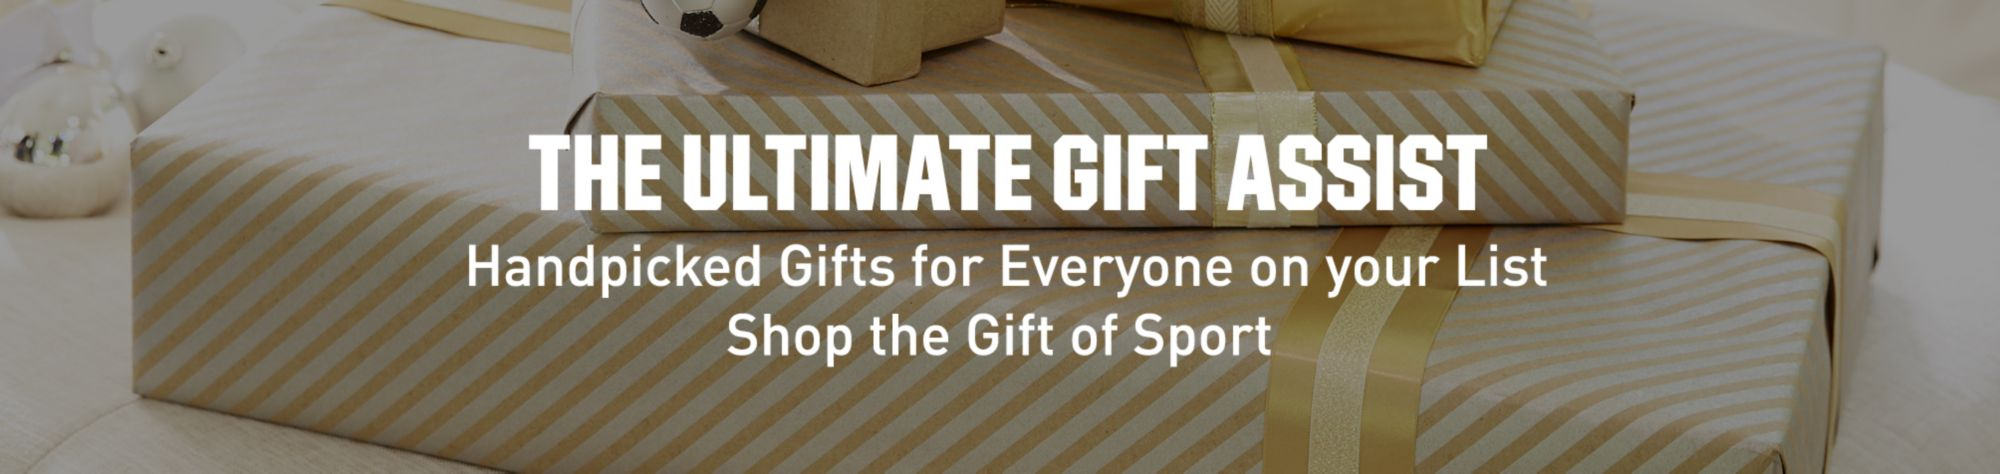 The Ultimate Gift Assist - Shop the Gift of Sport